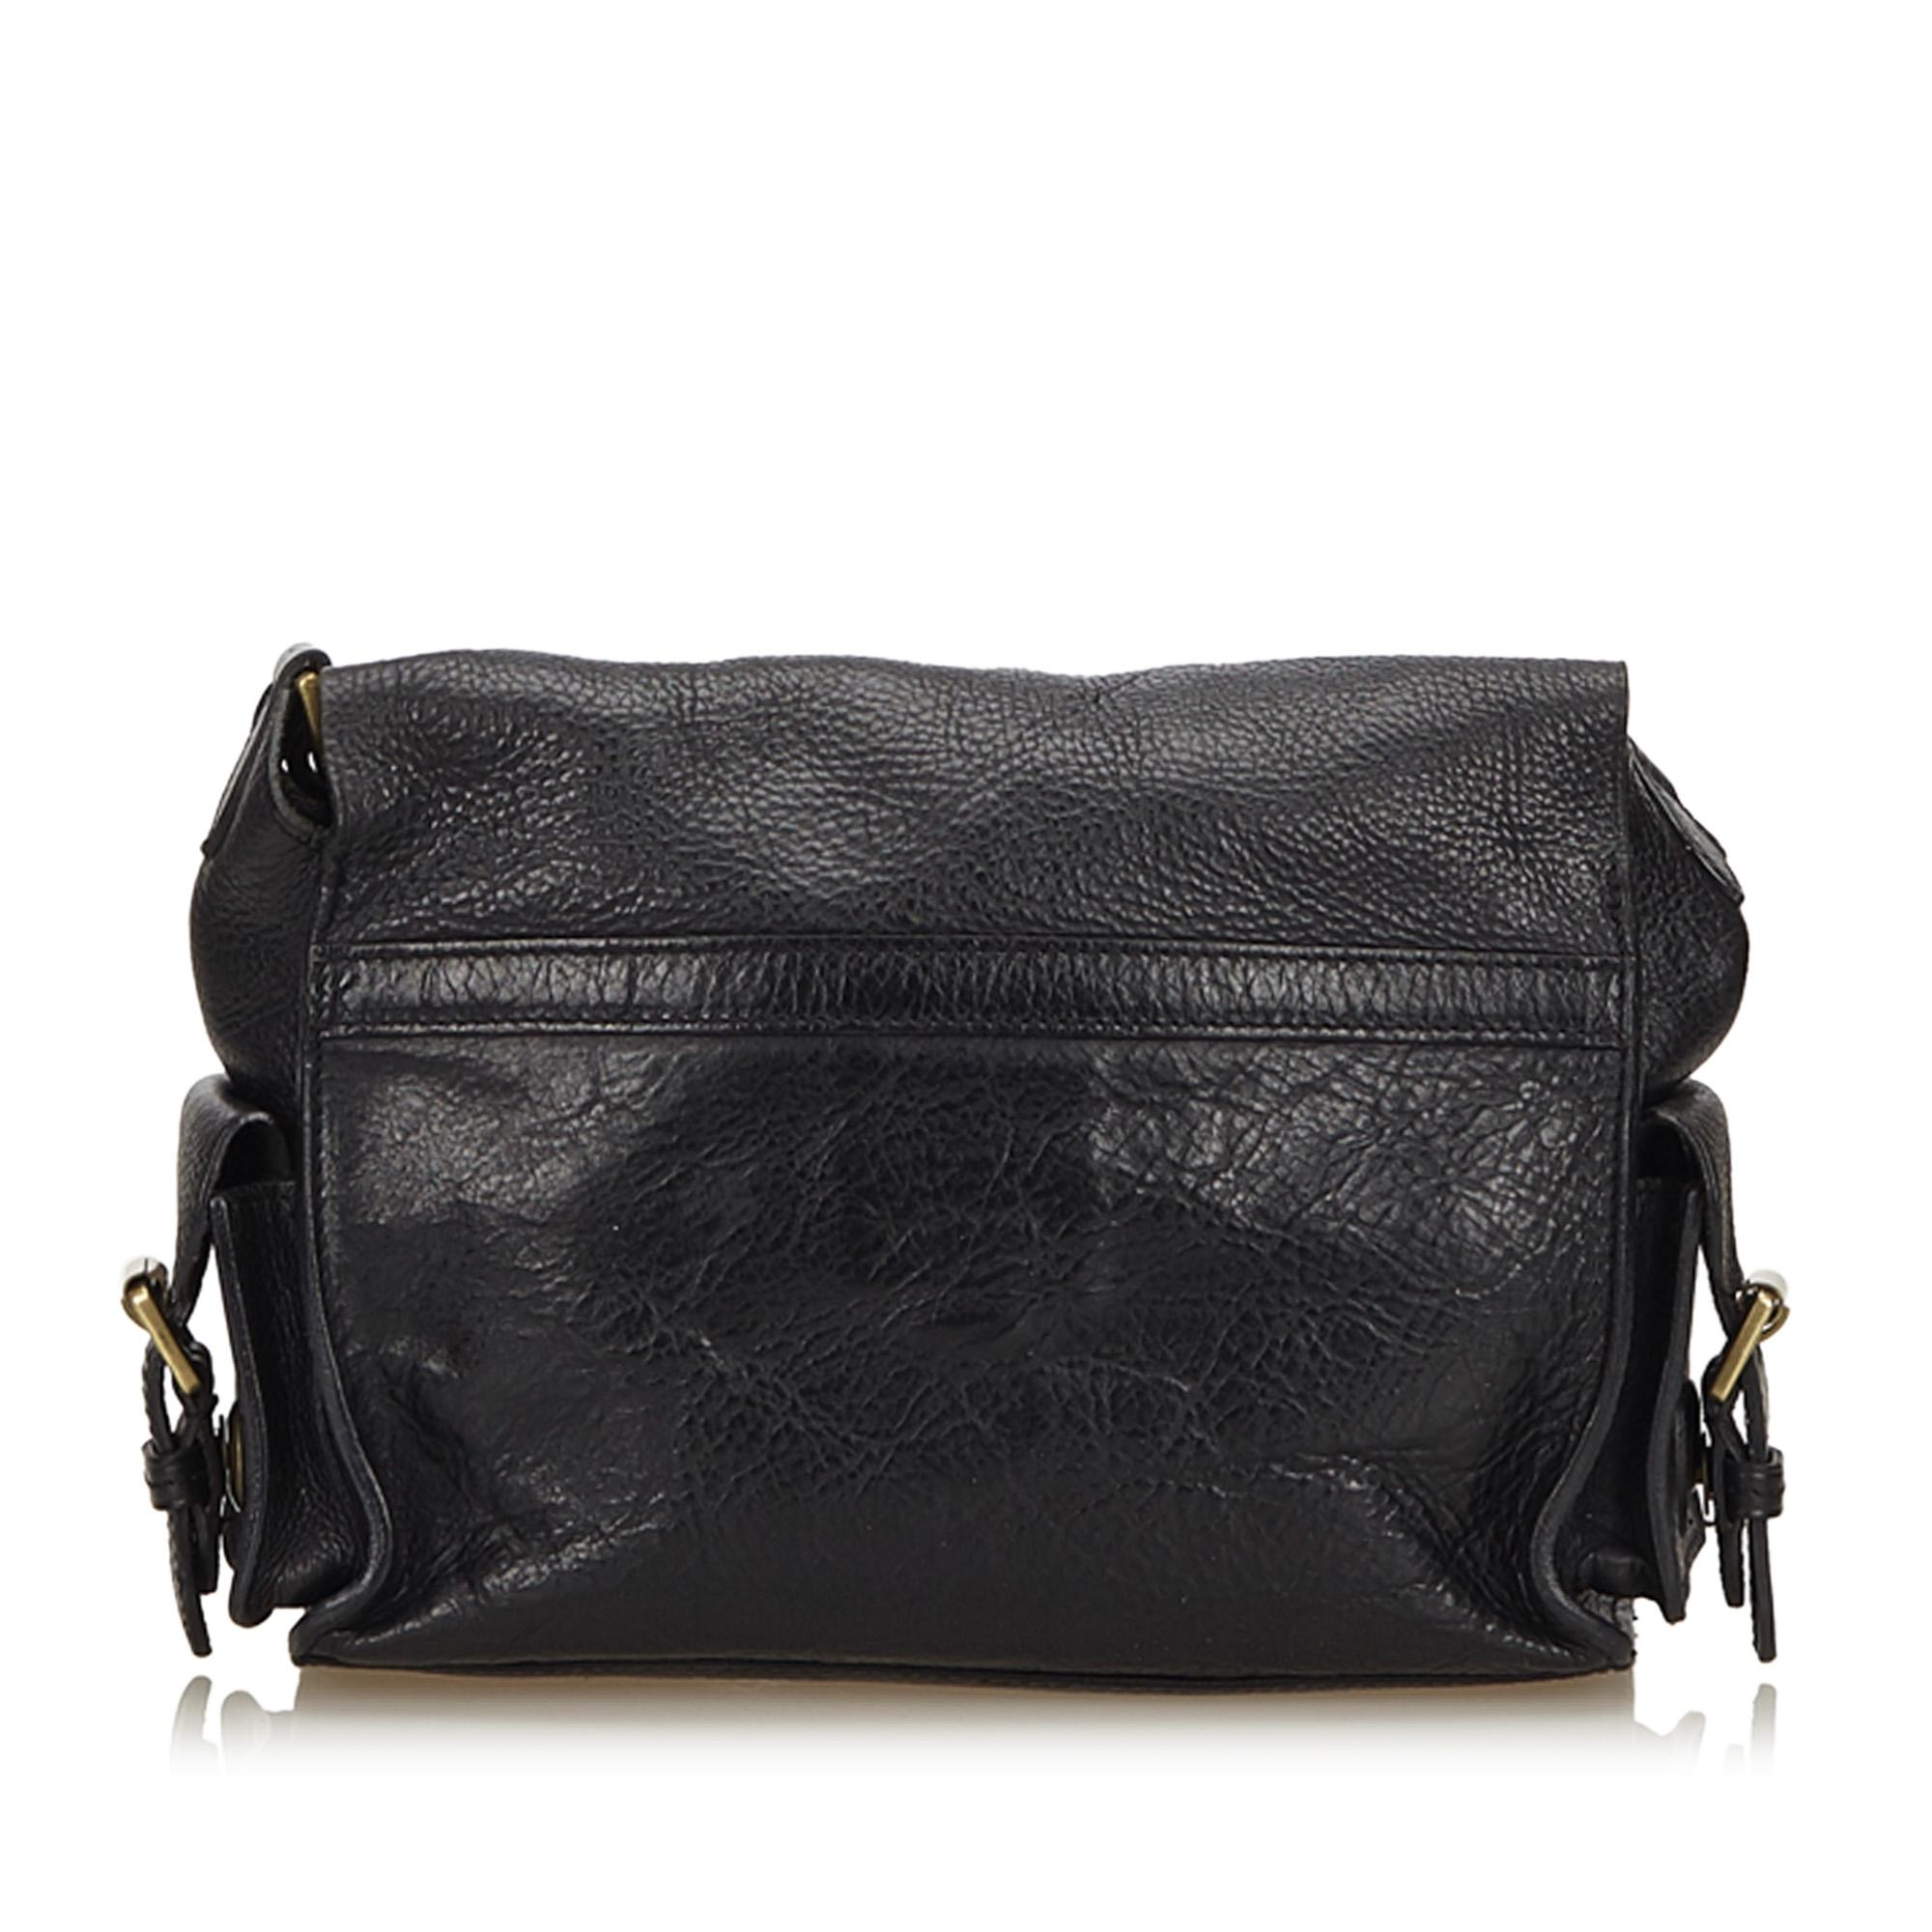 ... buy mulberry chain messenger black leather x others shoulder bag tradesy  48878 a78b6 db4fc7825c6cf